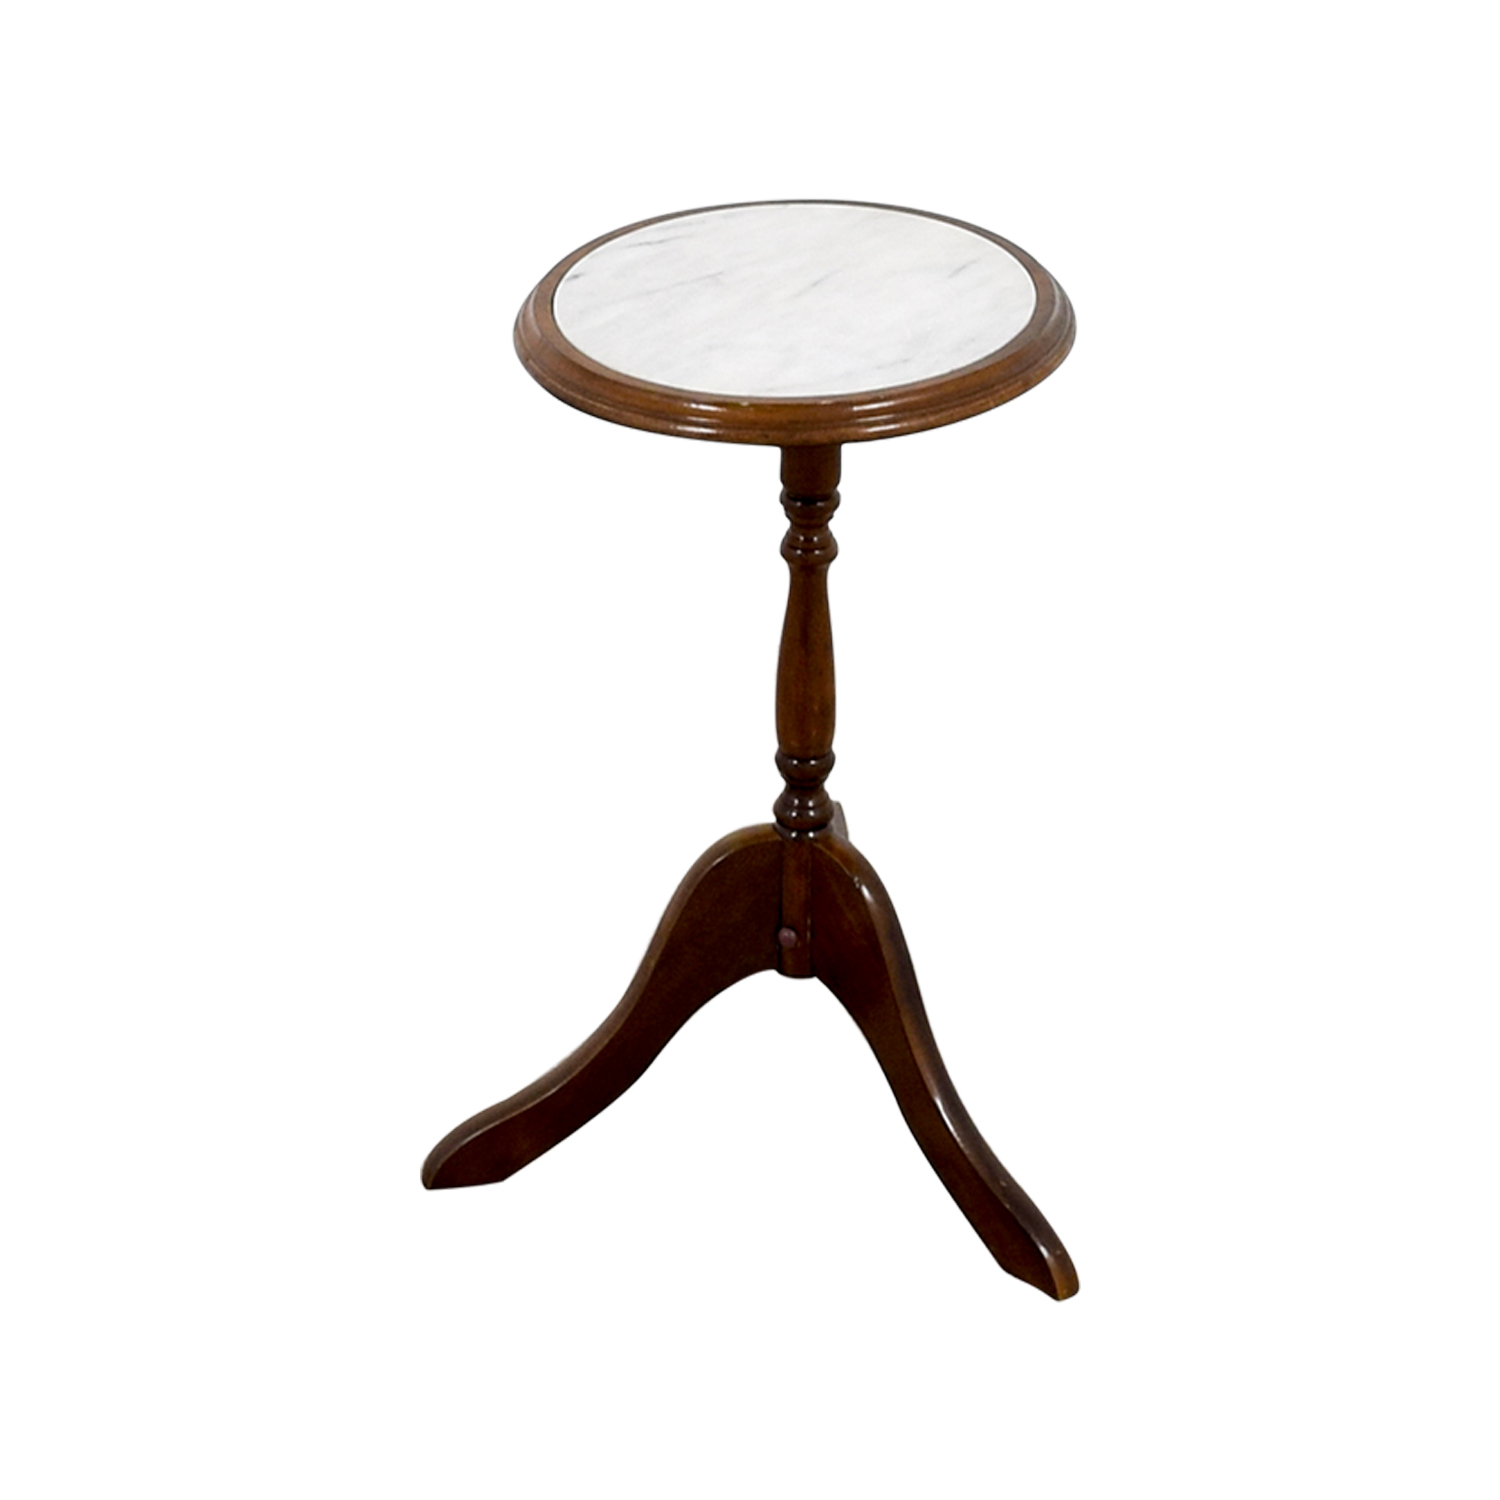 Vintage Round Marble Table price